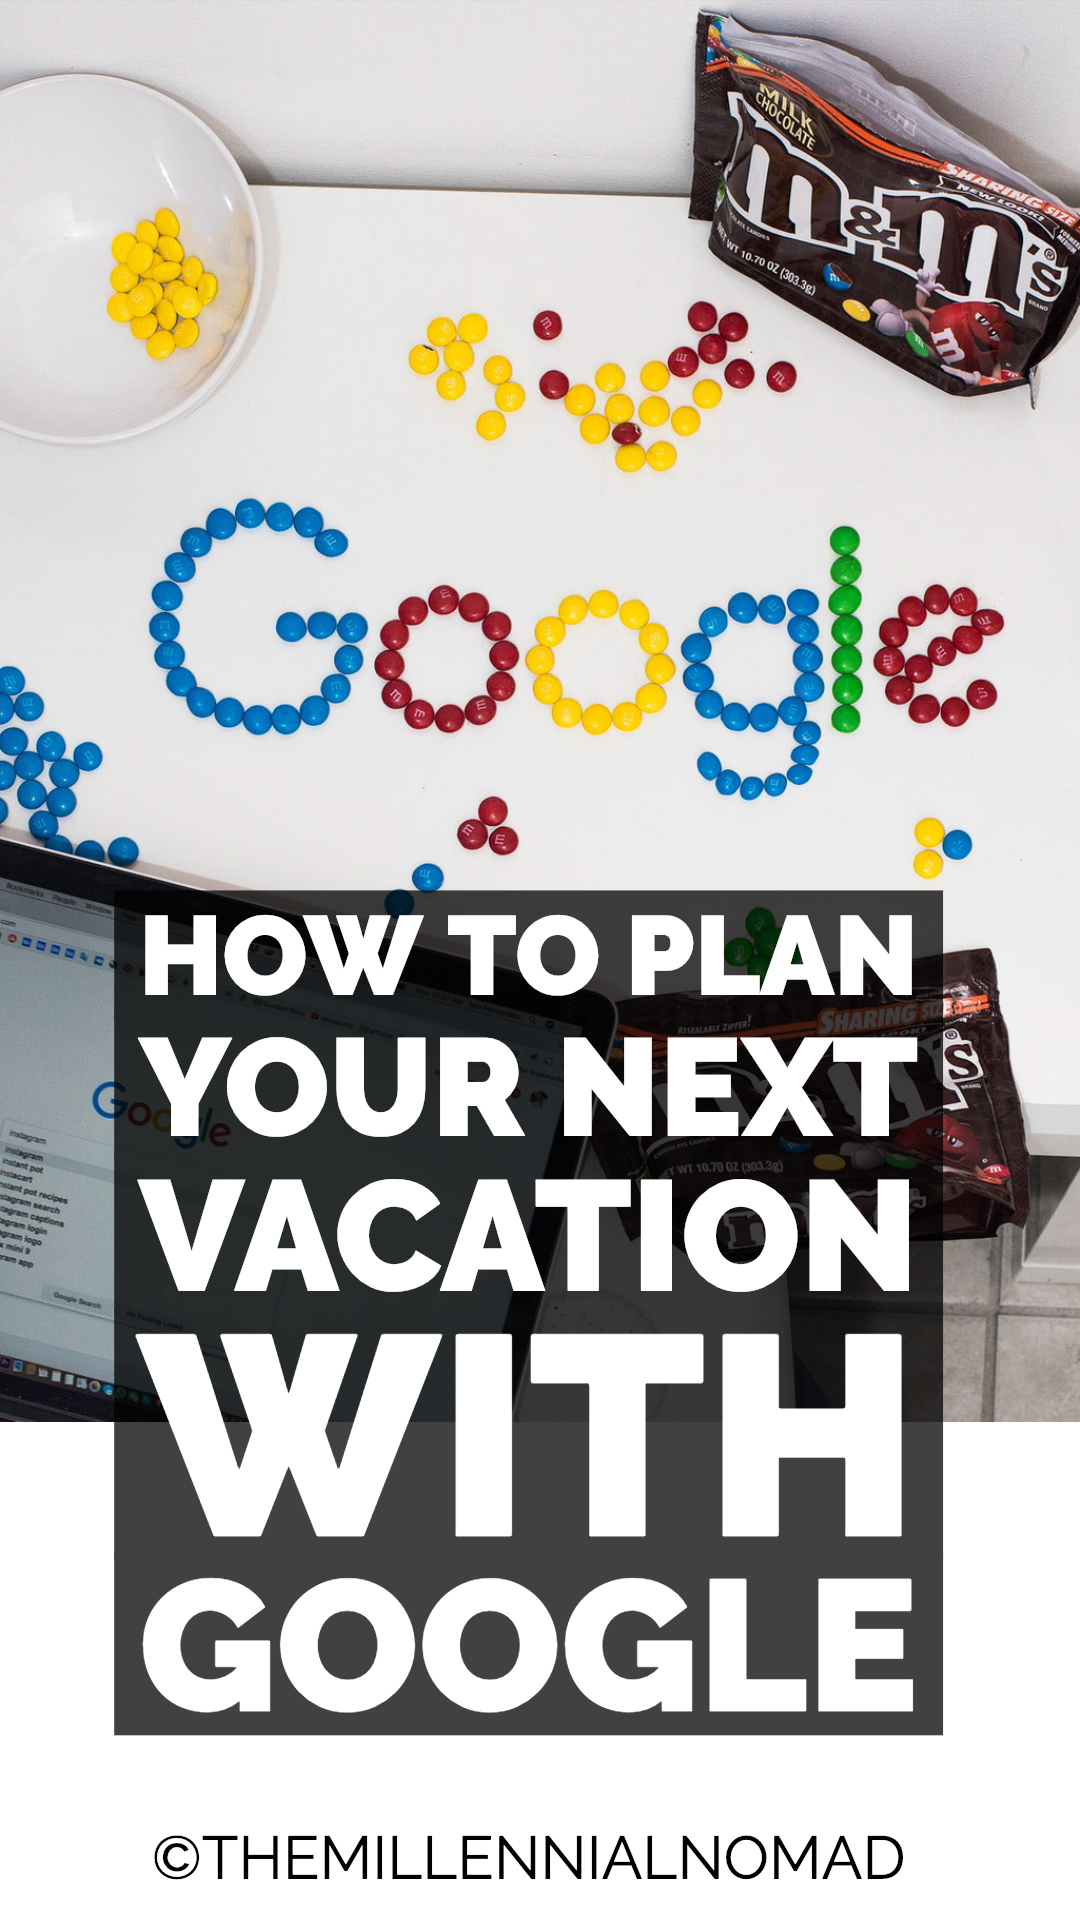 Alexandre kan - how to plan your next vacation with Google